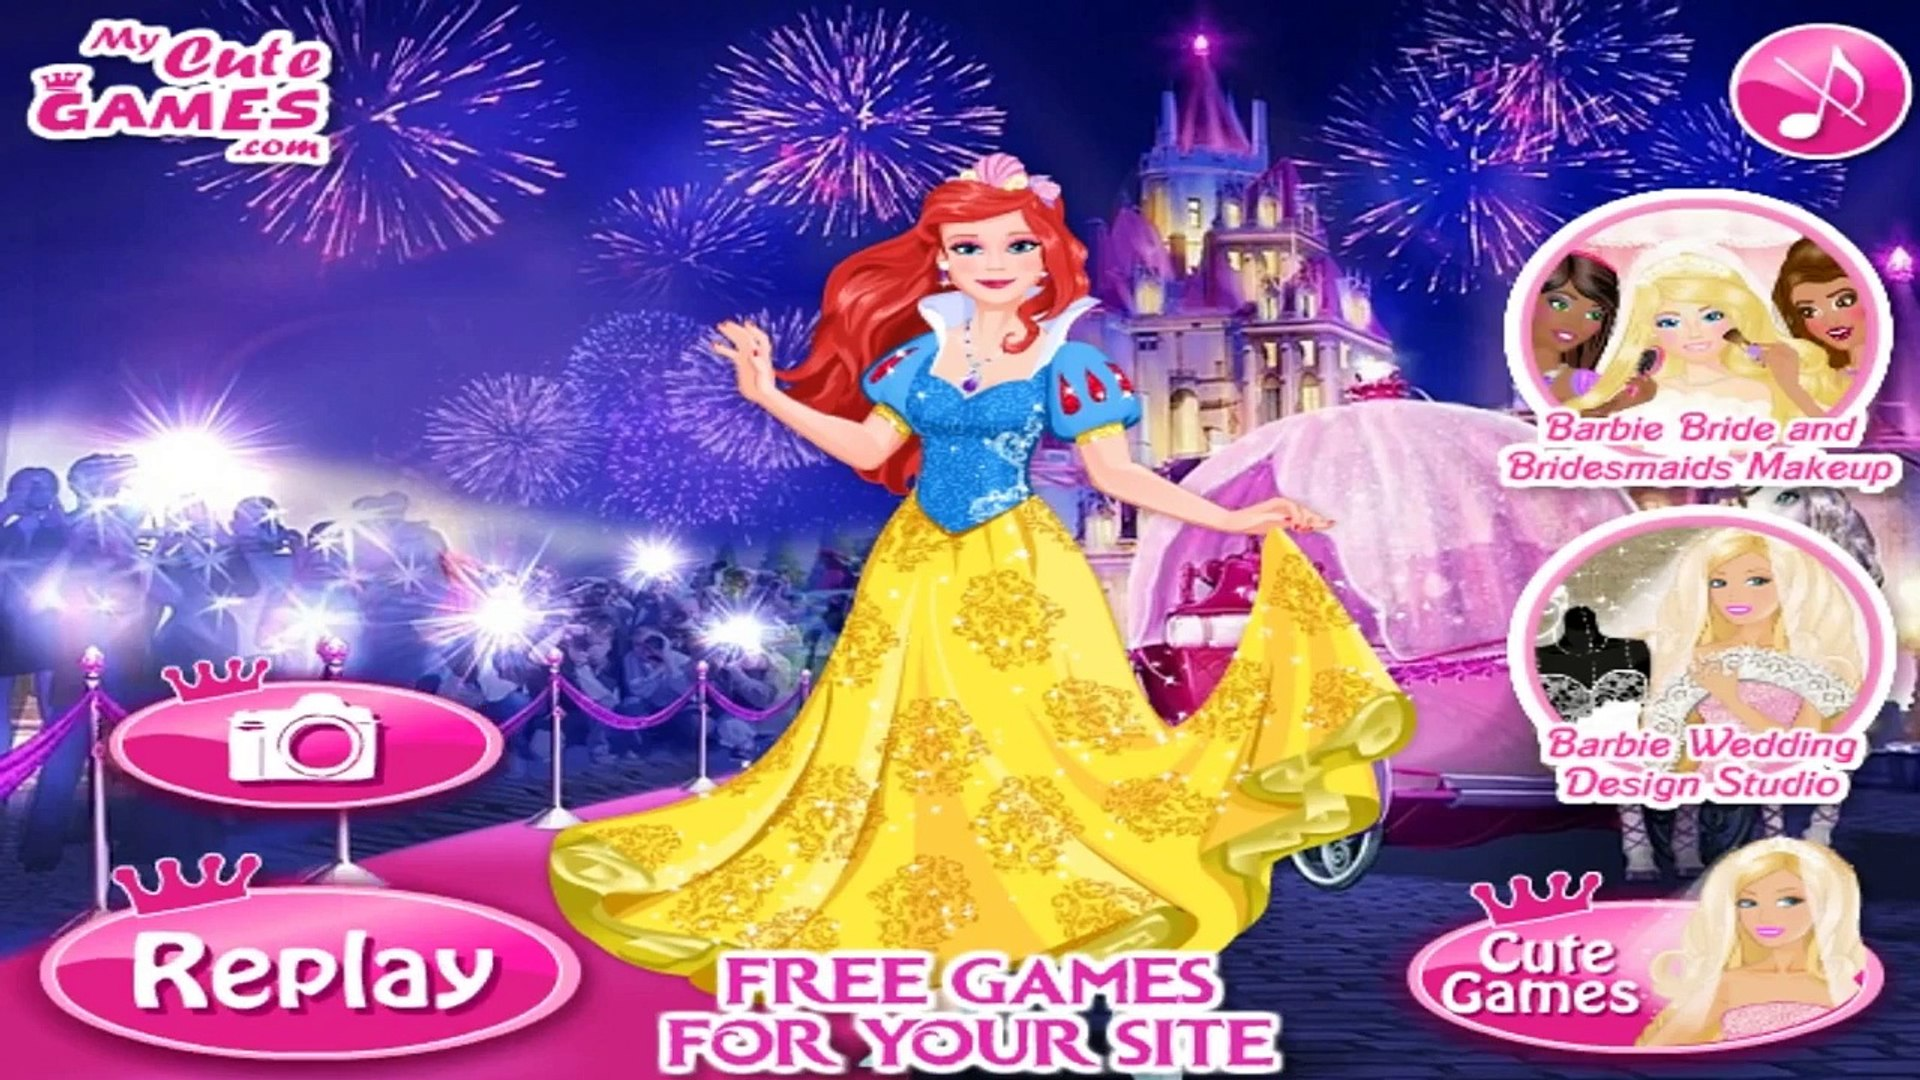 Barbie Disney Princess - Barbie Games